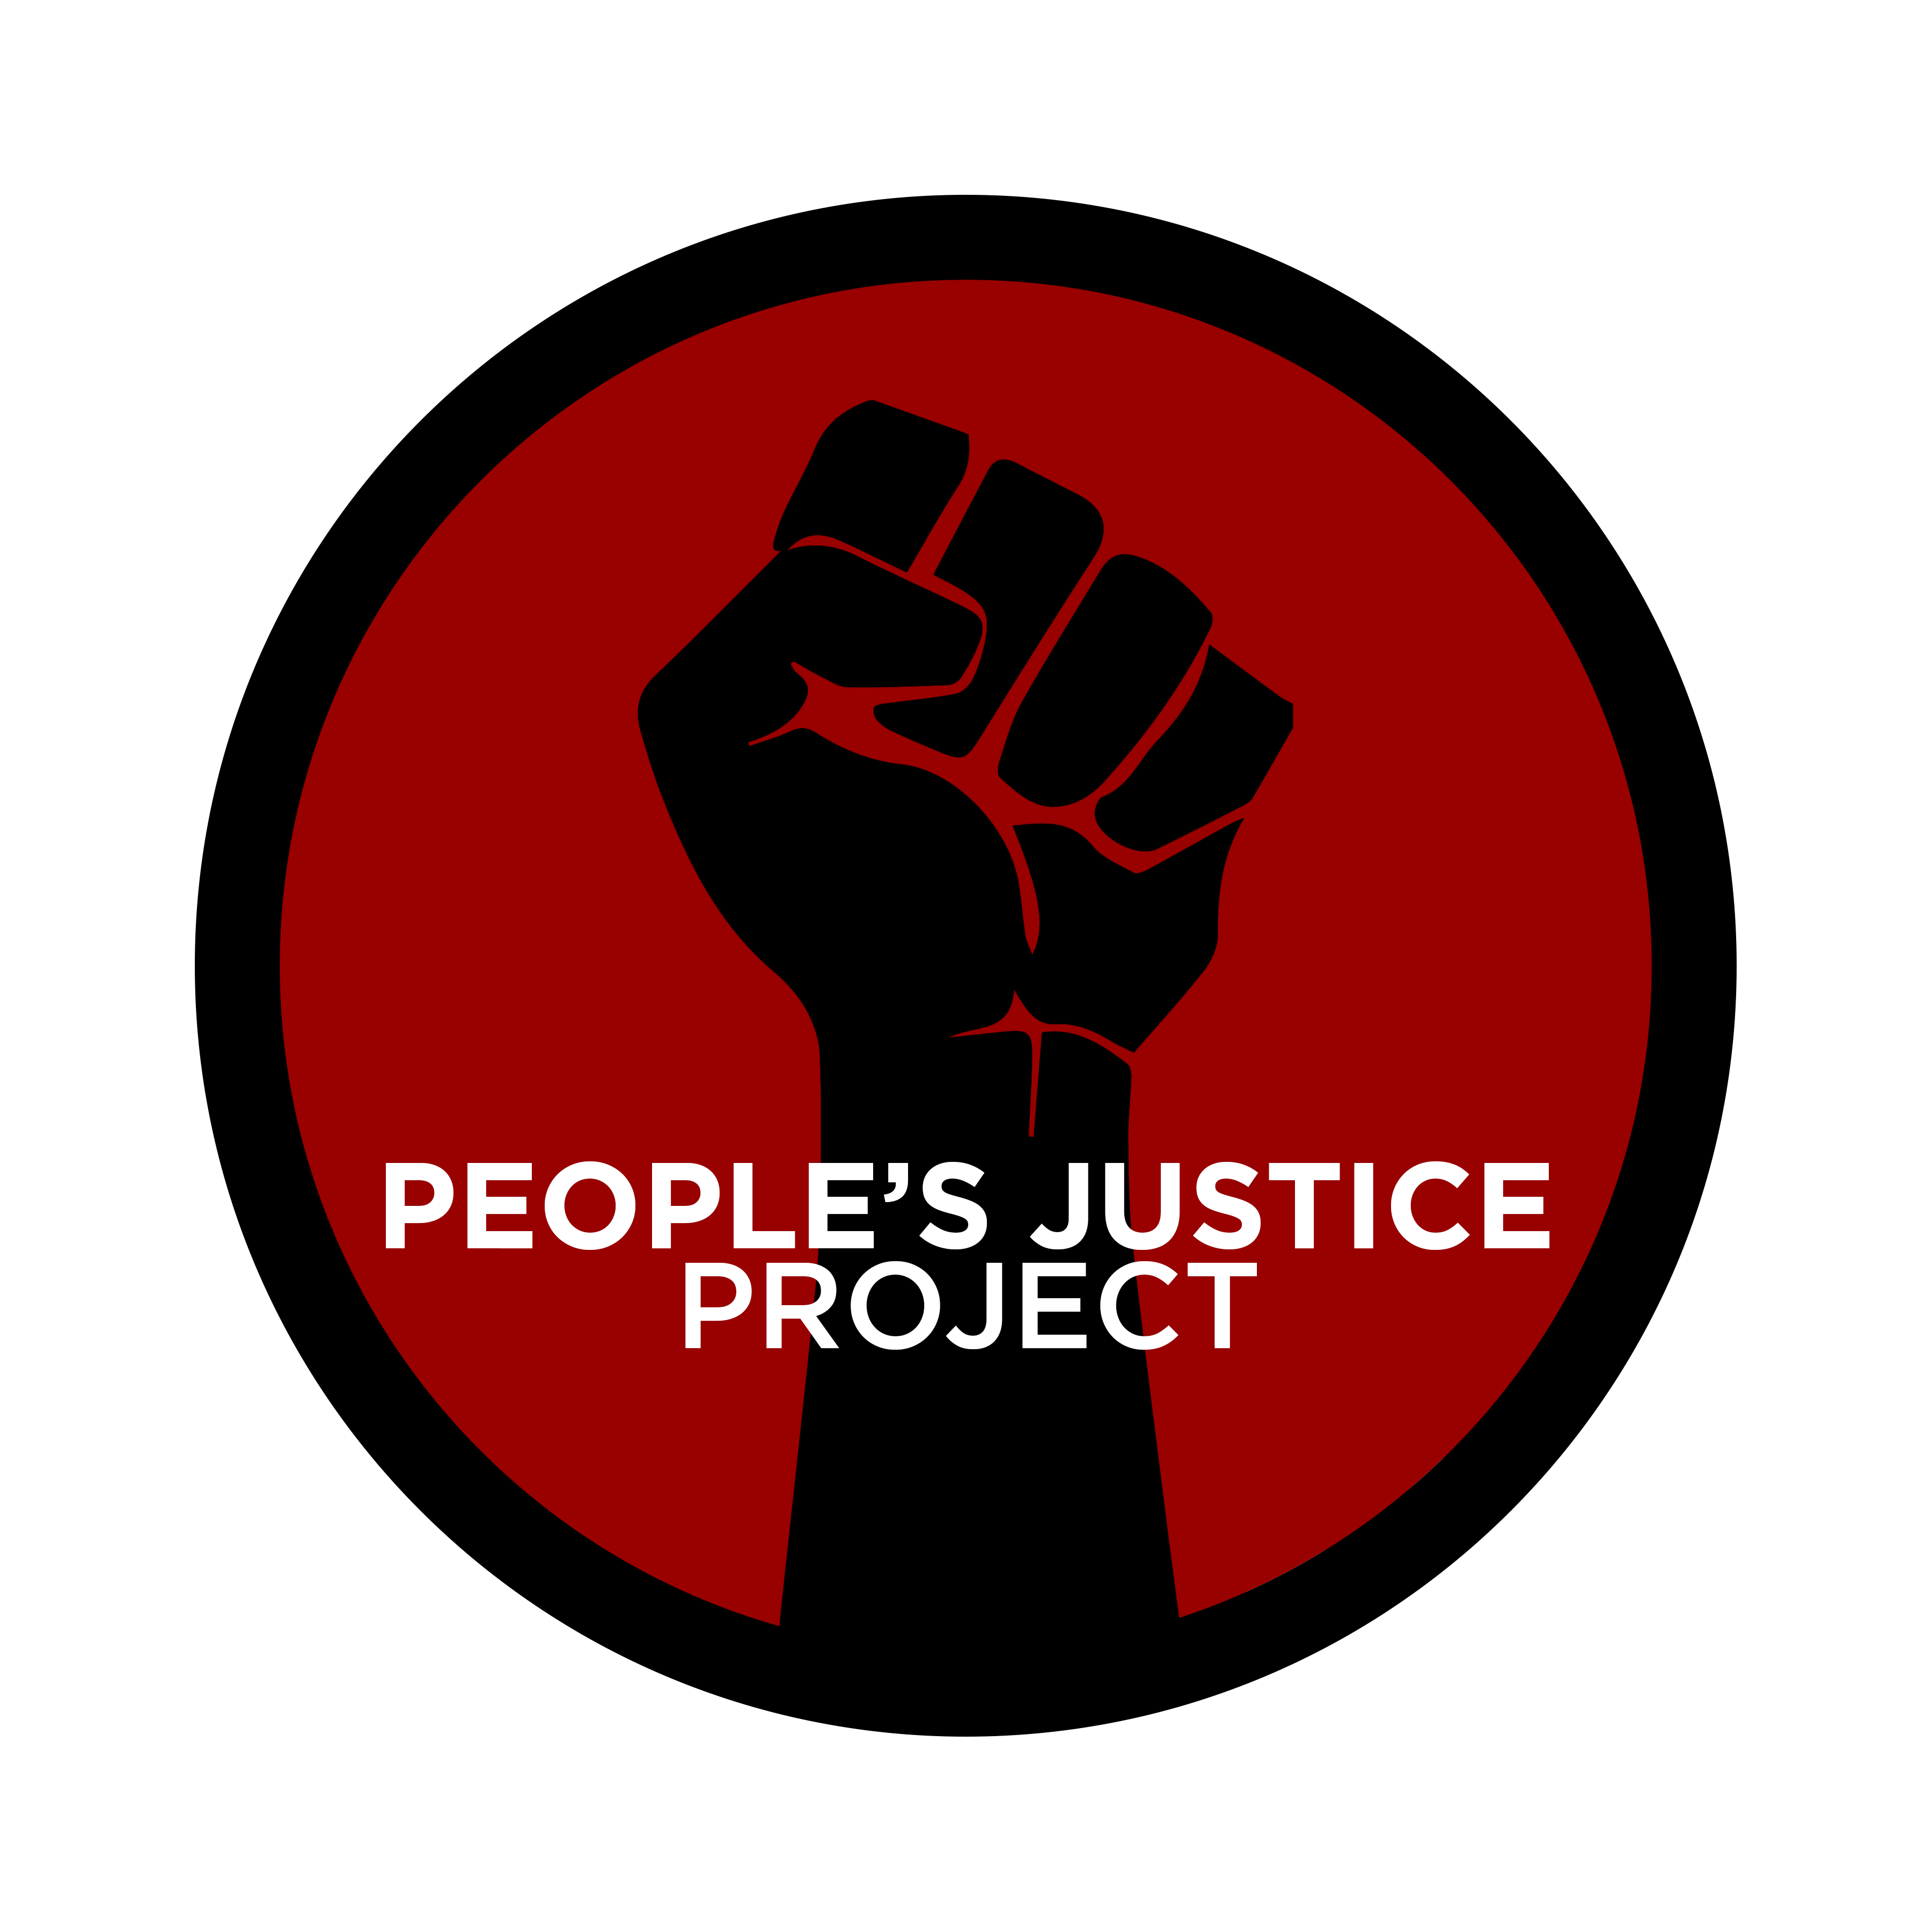 People's Justice Project